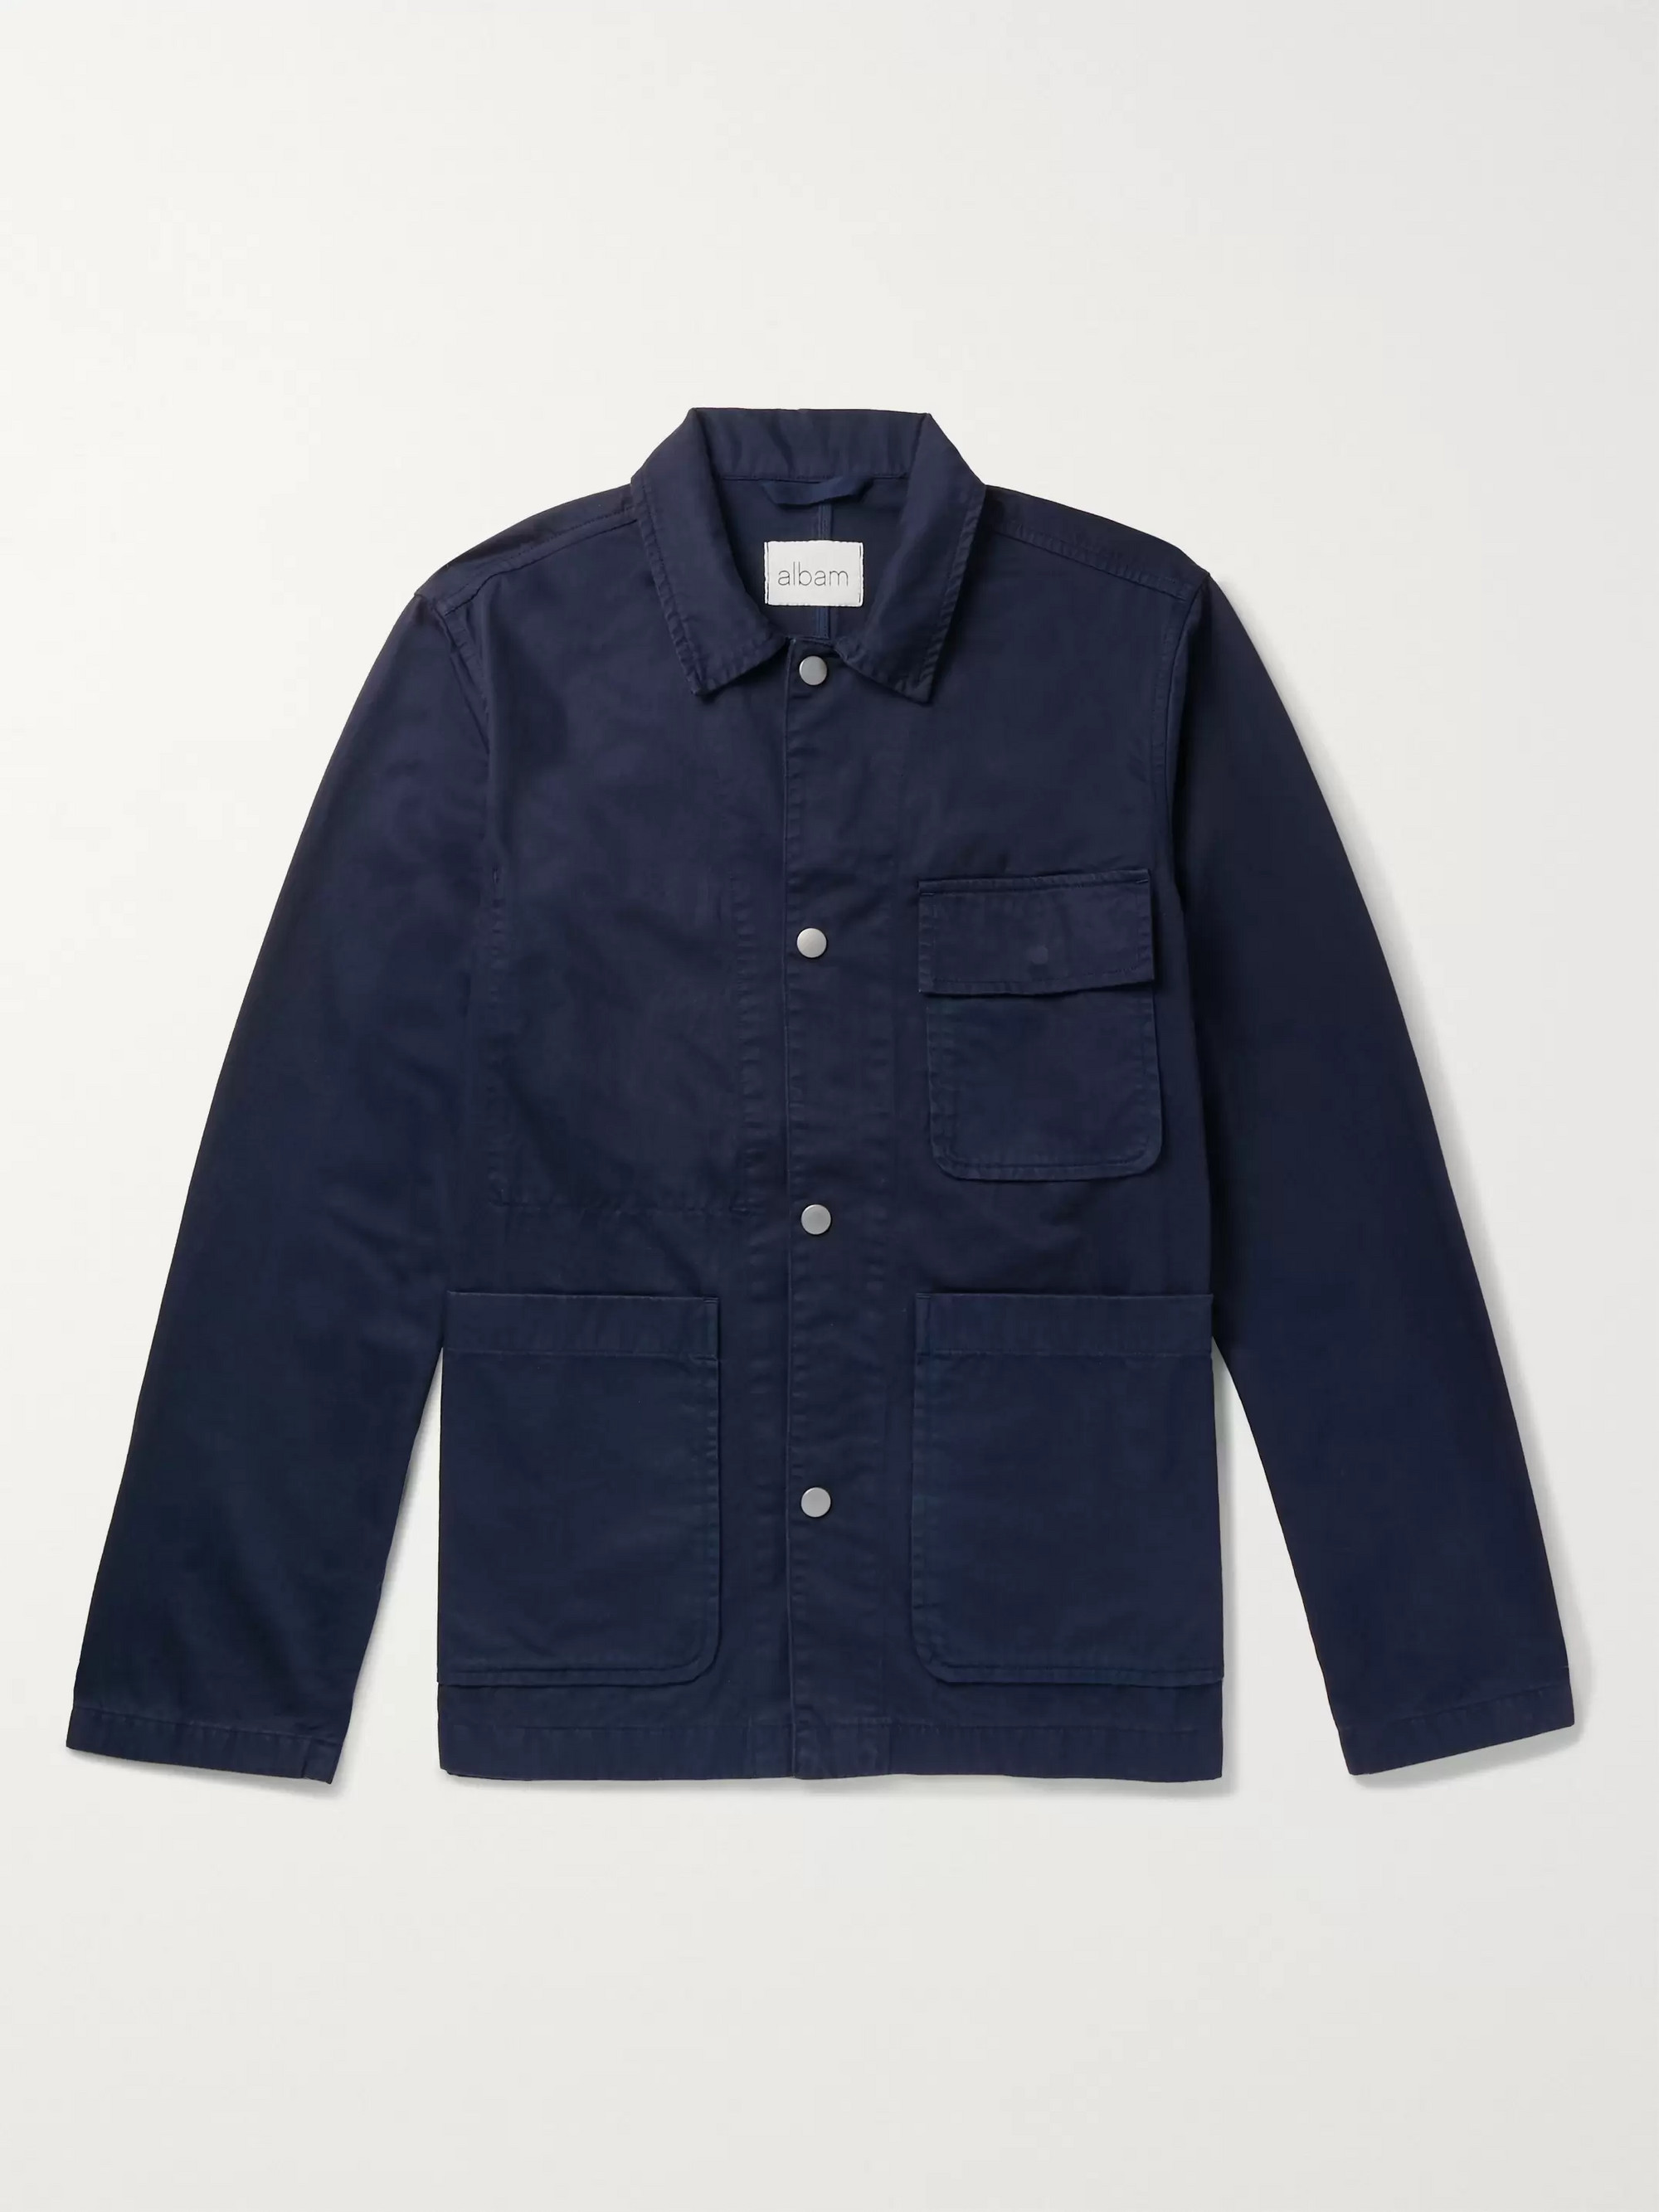 Albam Cotton-Twill Chore Jacket